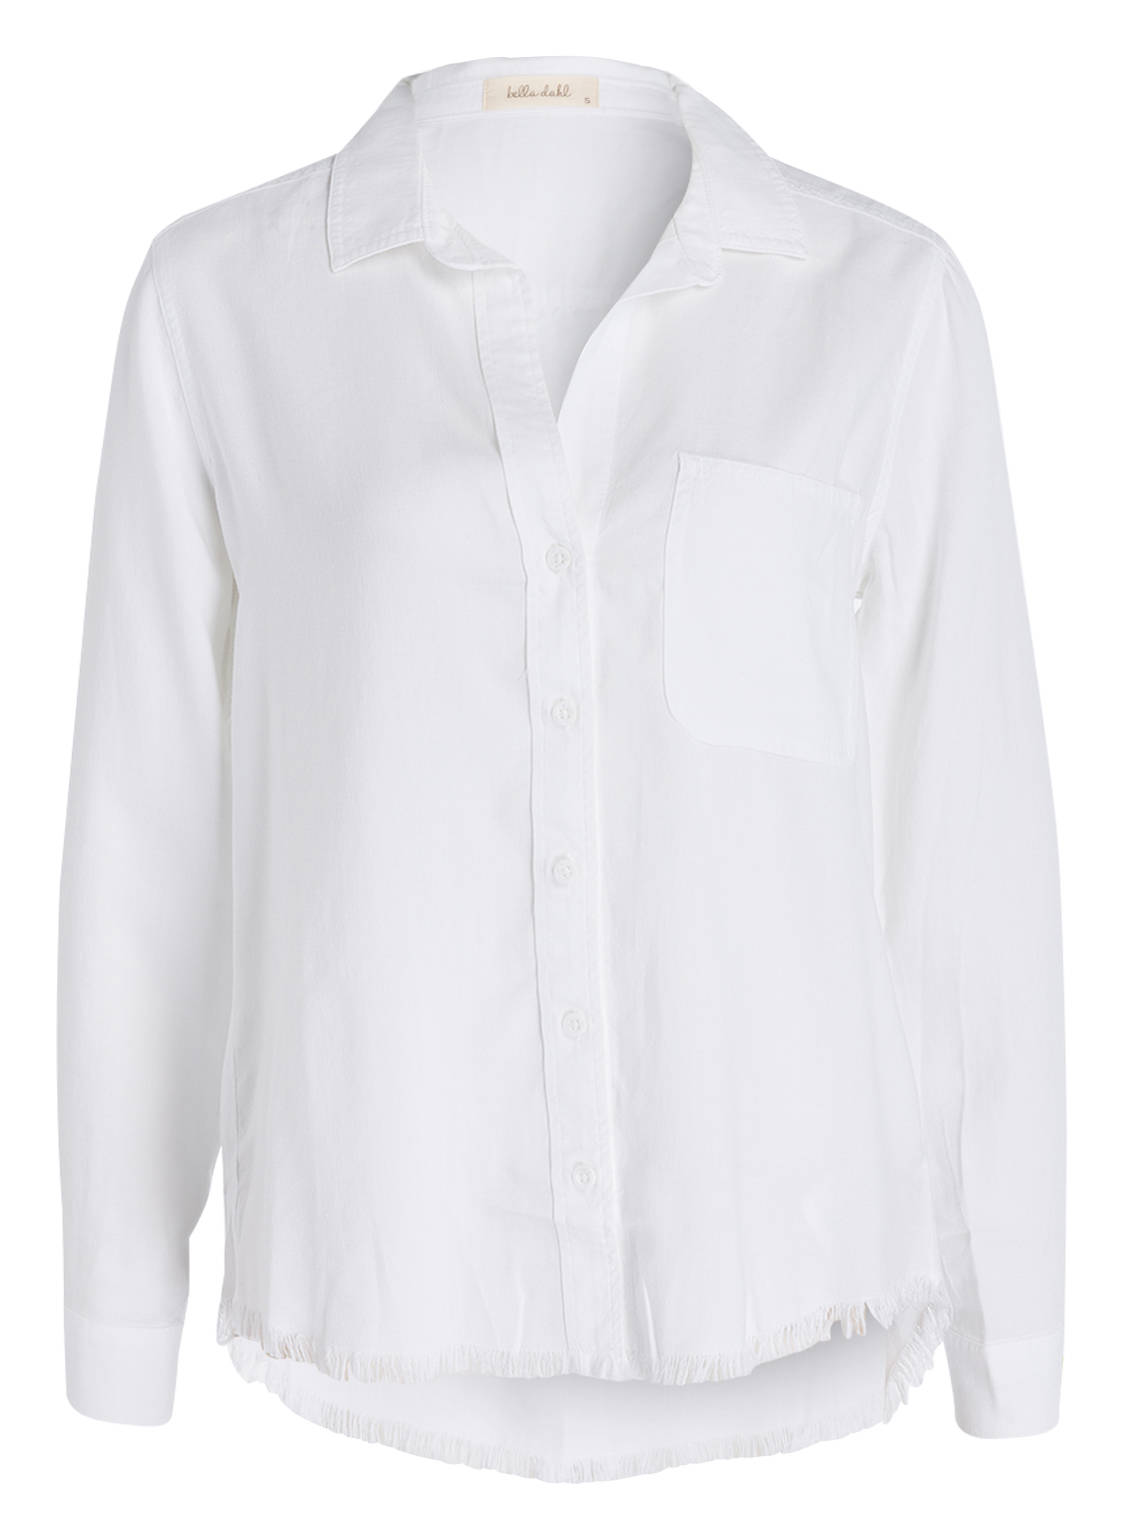 Image of Bella Dahl Bluse weiss